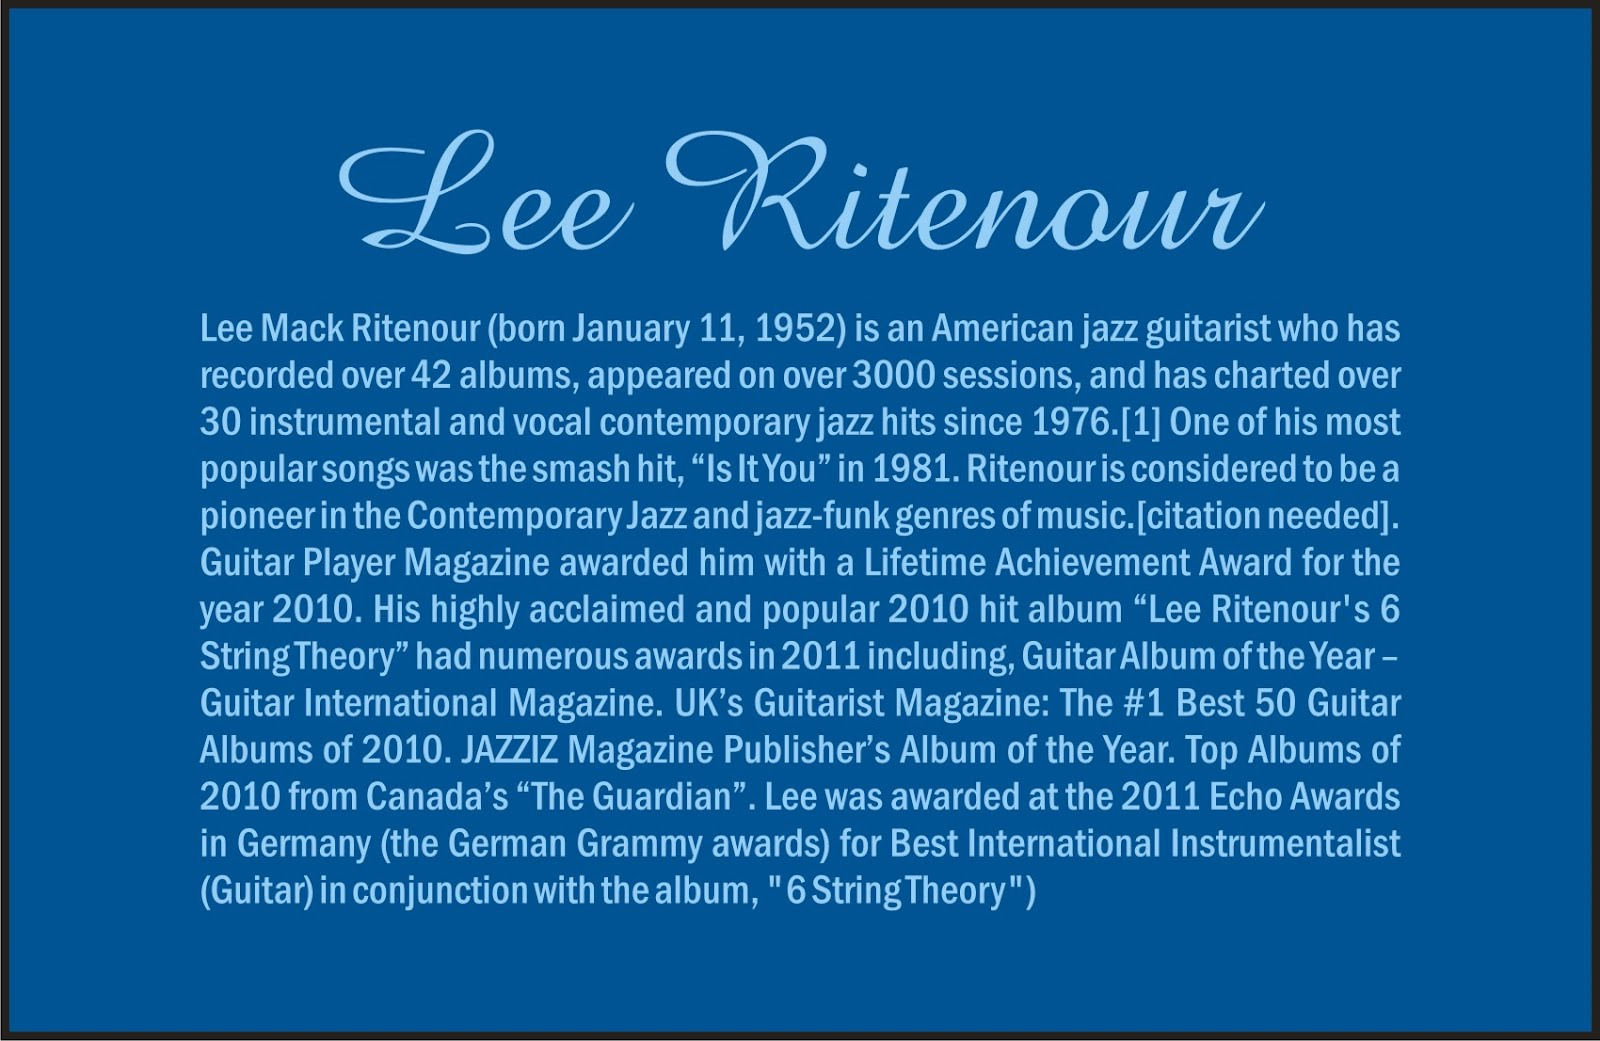 lee_ritenour-lee_ritenour_back_vector